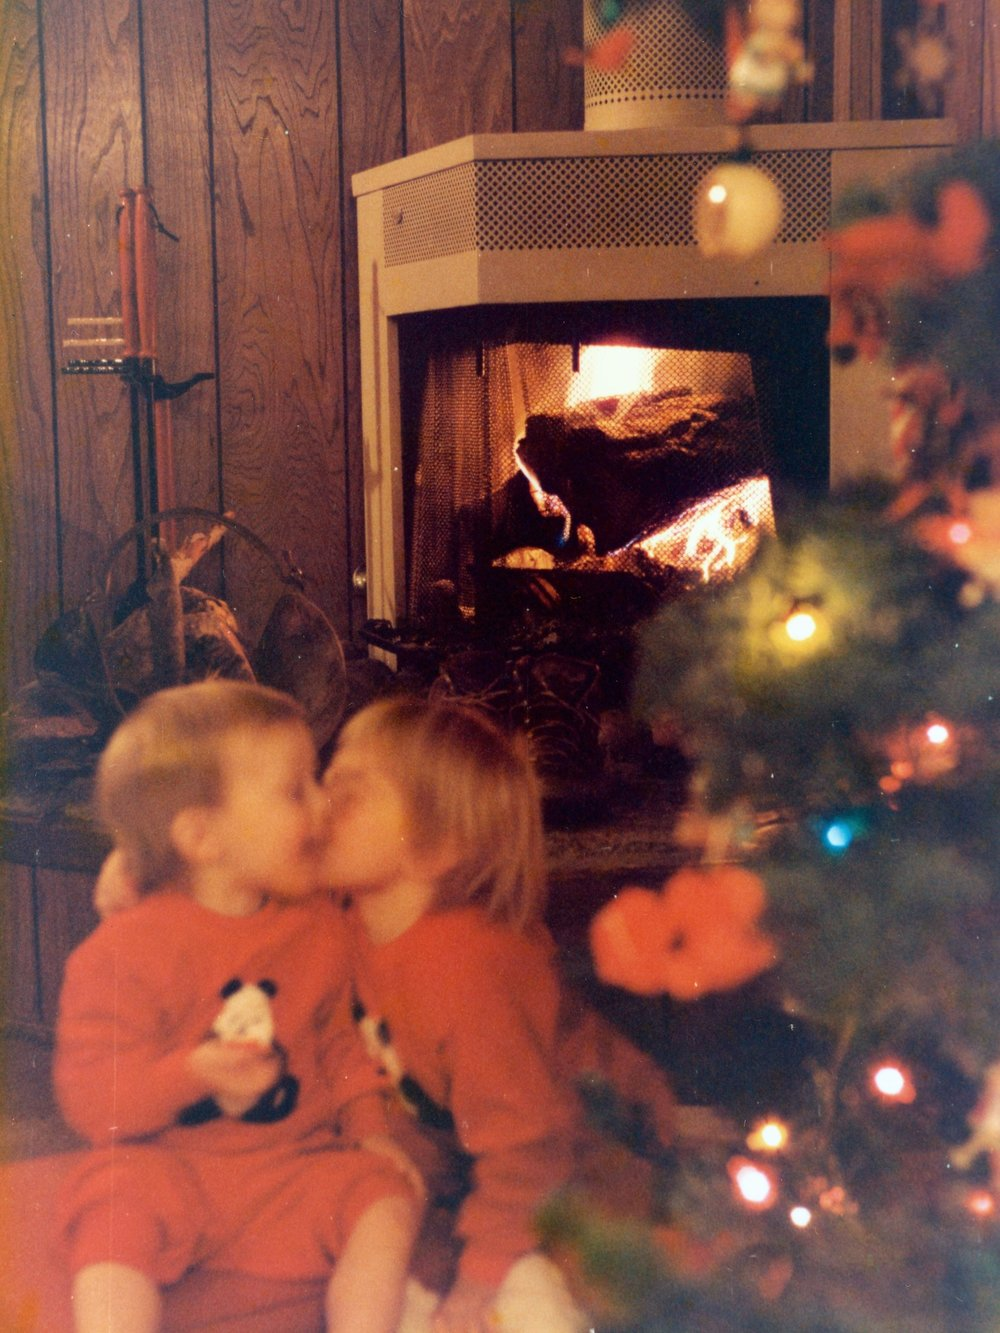 My brother Mike and I at Grandma's house for Christmas, December 25, 1985.